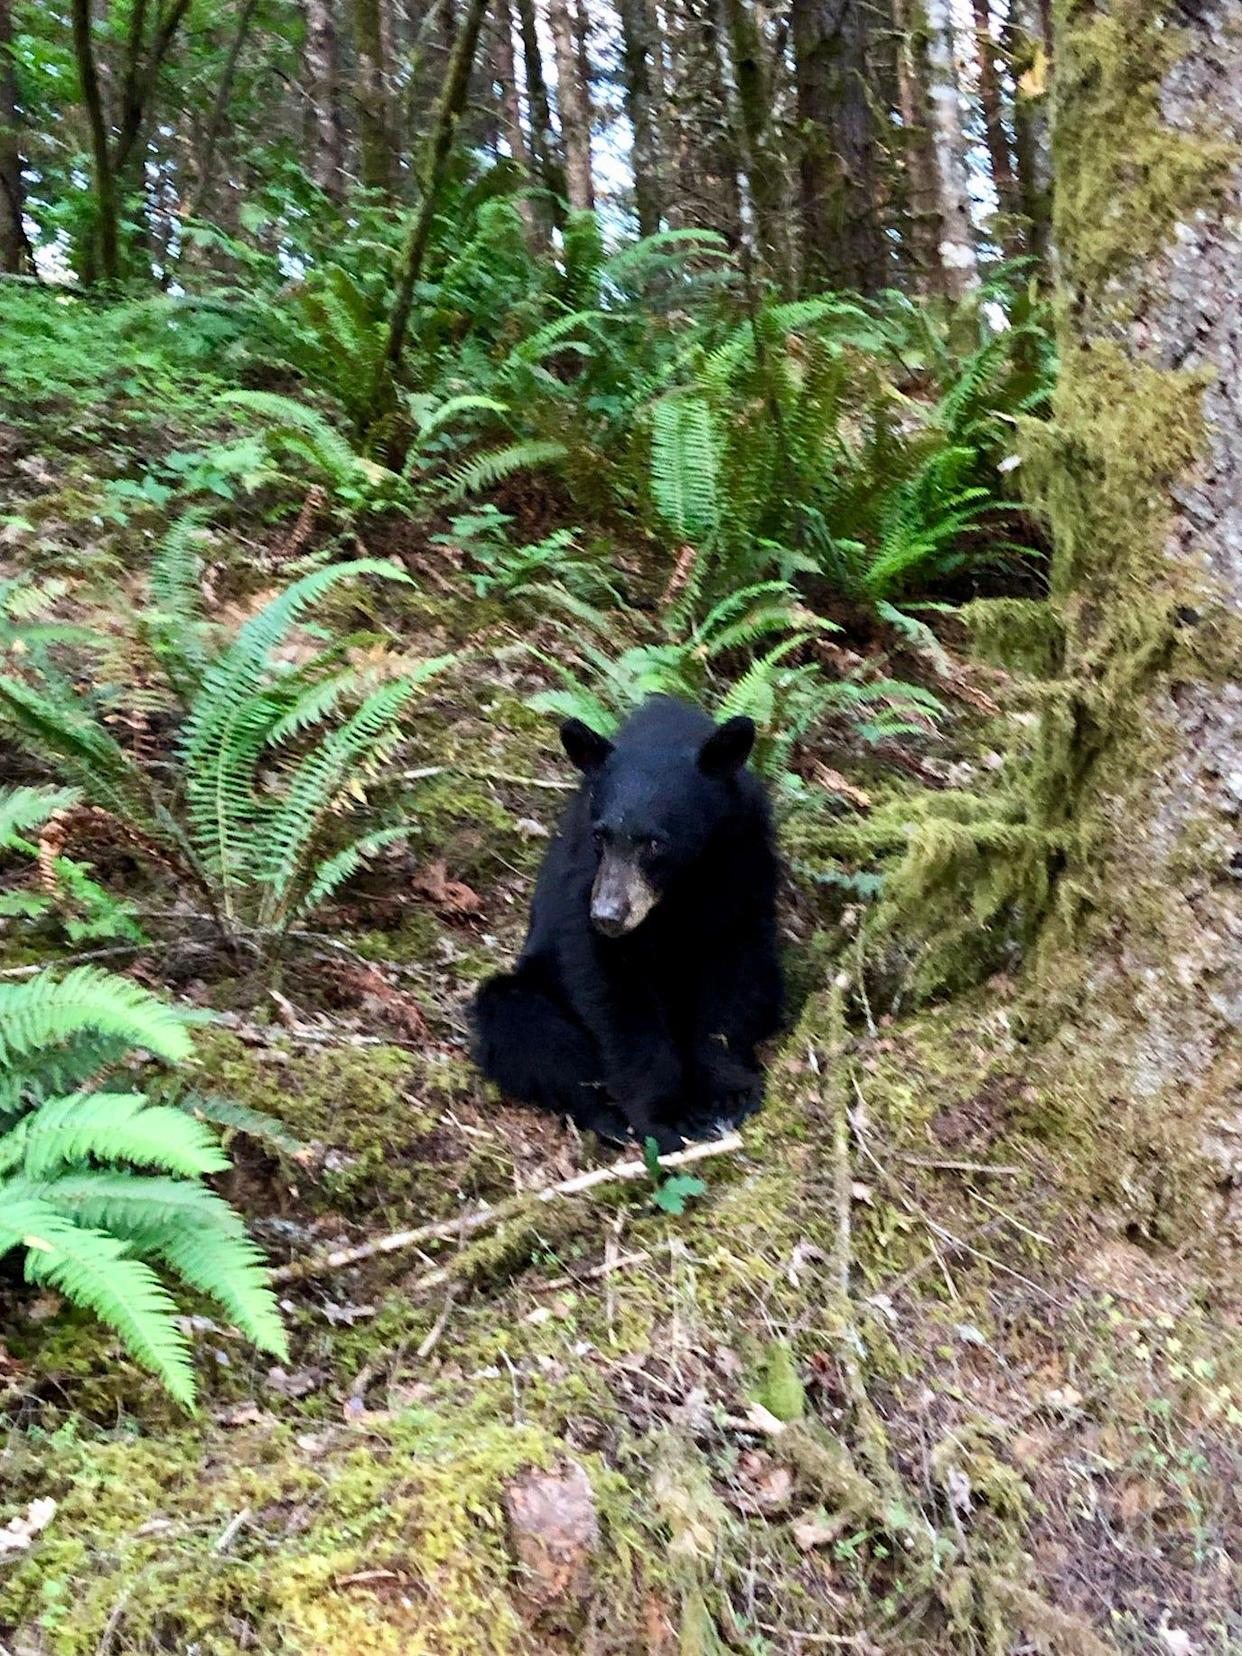 The black bear was used to human food and interaction.